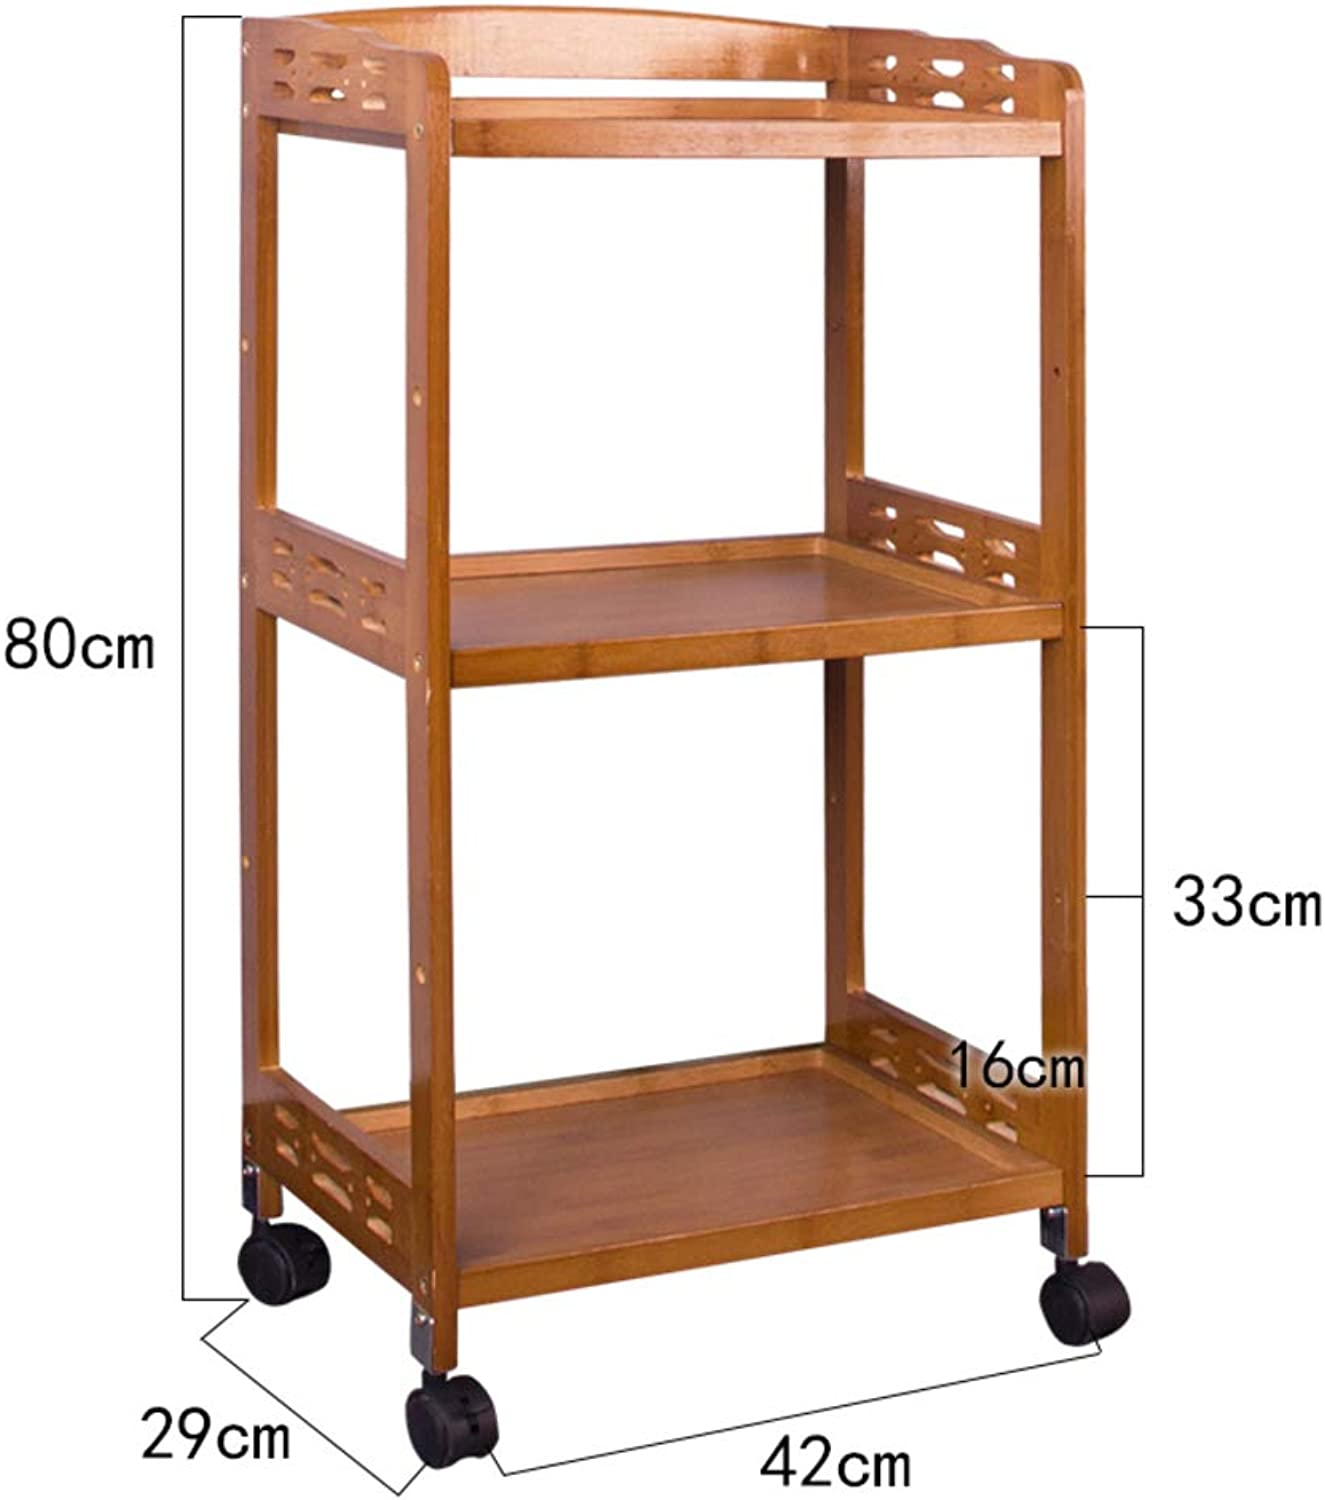 Kitchen Dining Rolling cart,Movable Dining car Racks Seasonings Storage Rack Household Kitchen Storage cart for Living Room-A